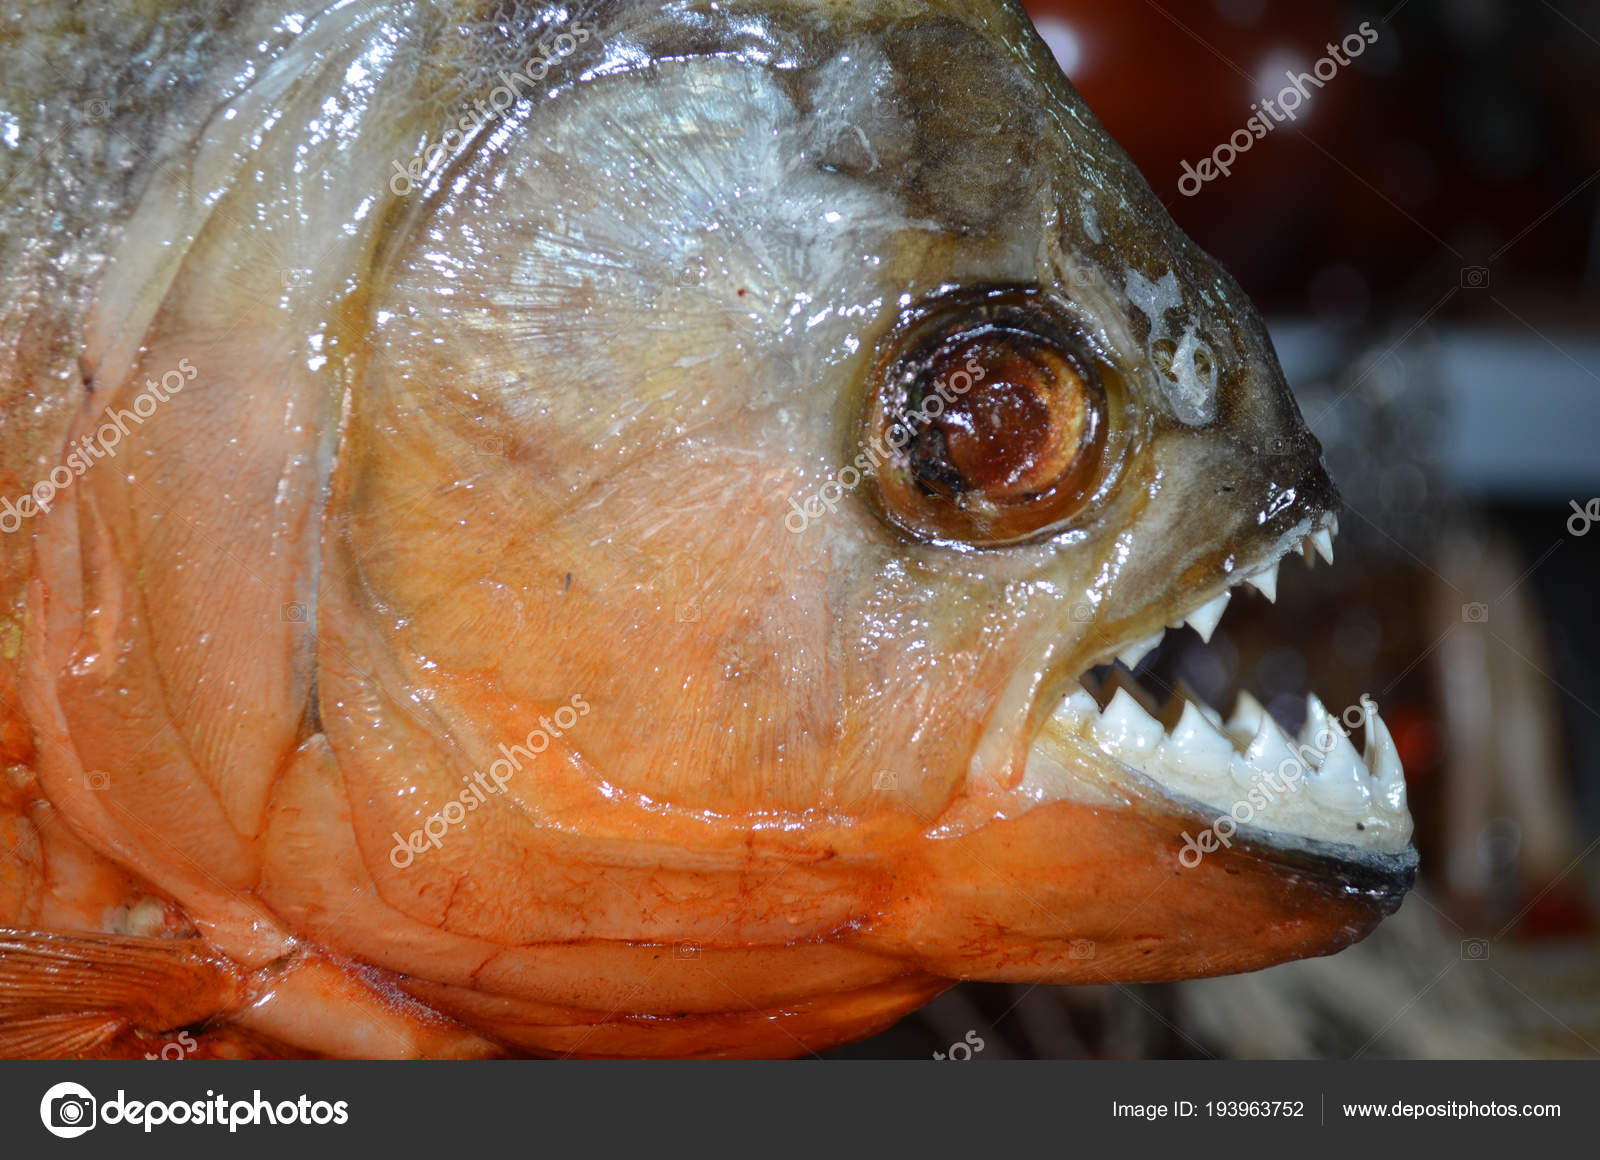 Red Bellied Piranhas Sale Tourist Market Iquitos Peruvian Amazon